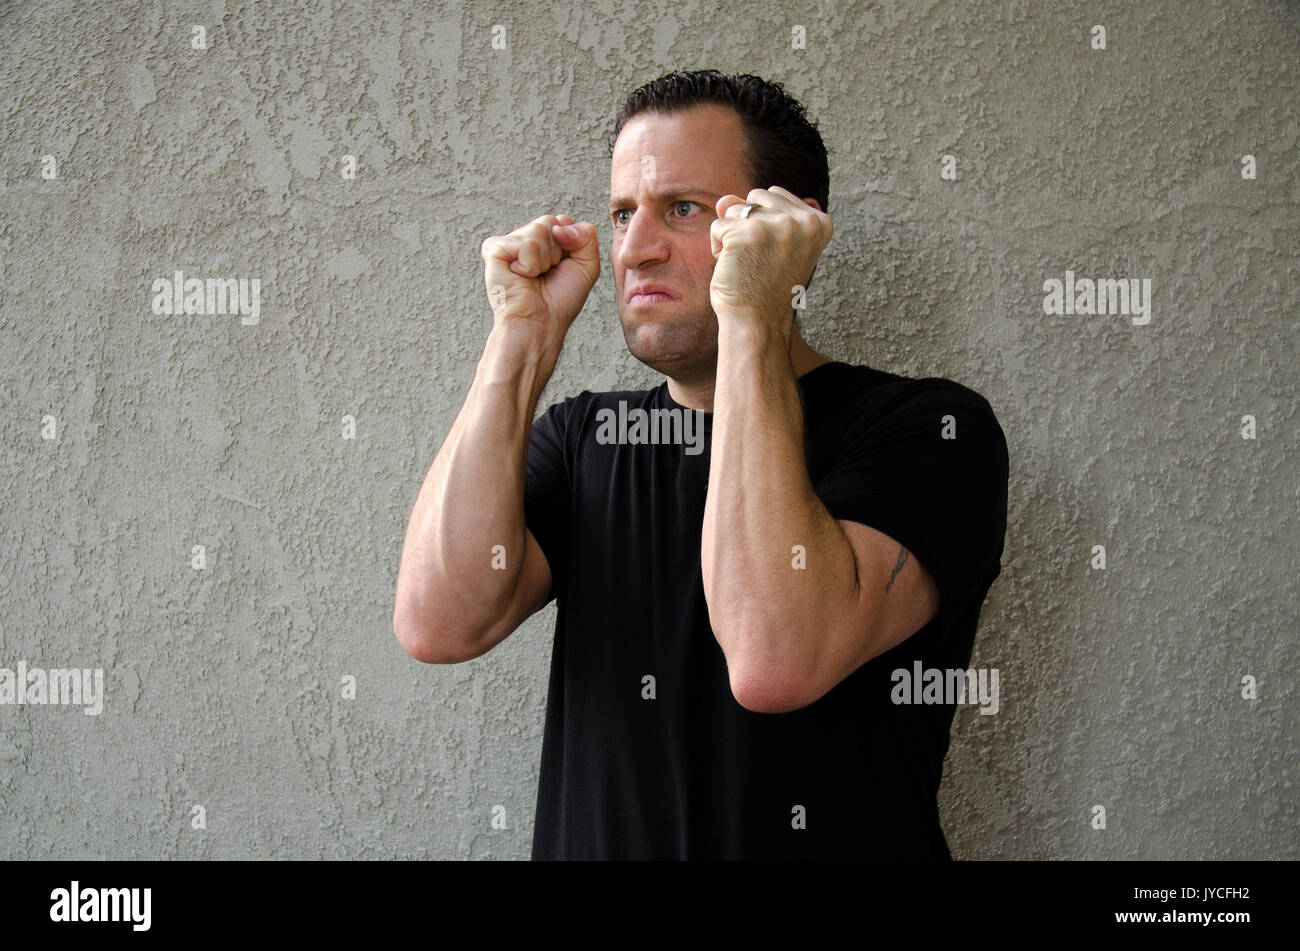 Furious man with clenched fists. - Stock Image